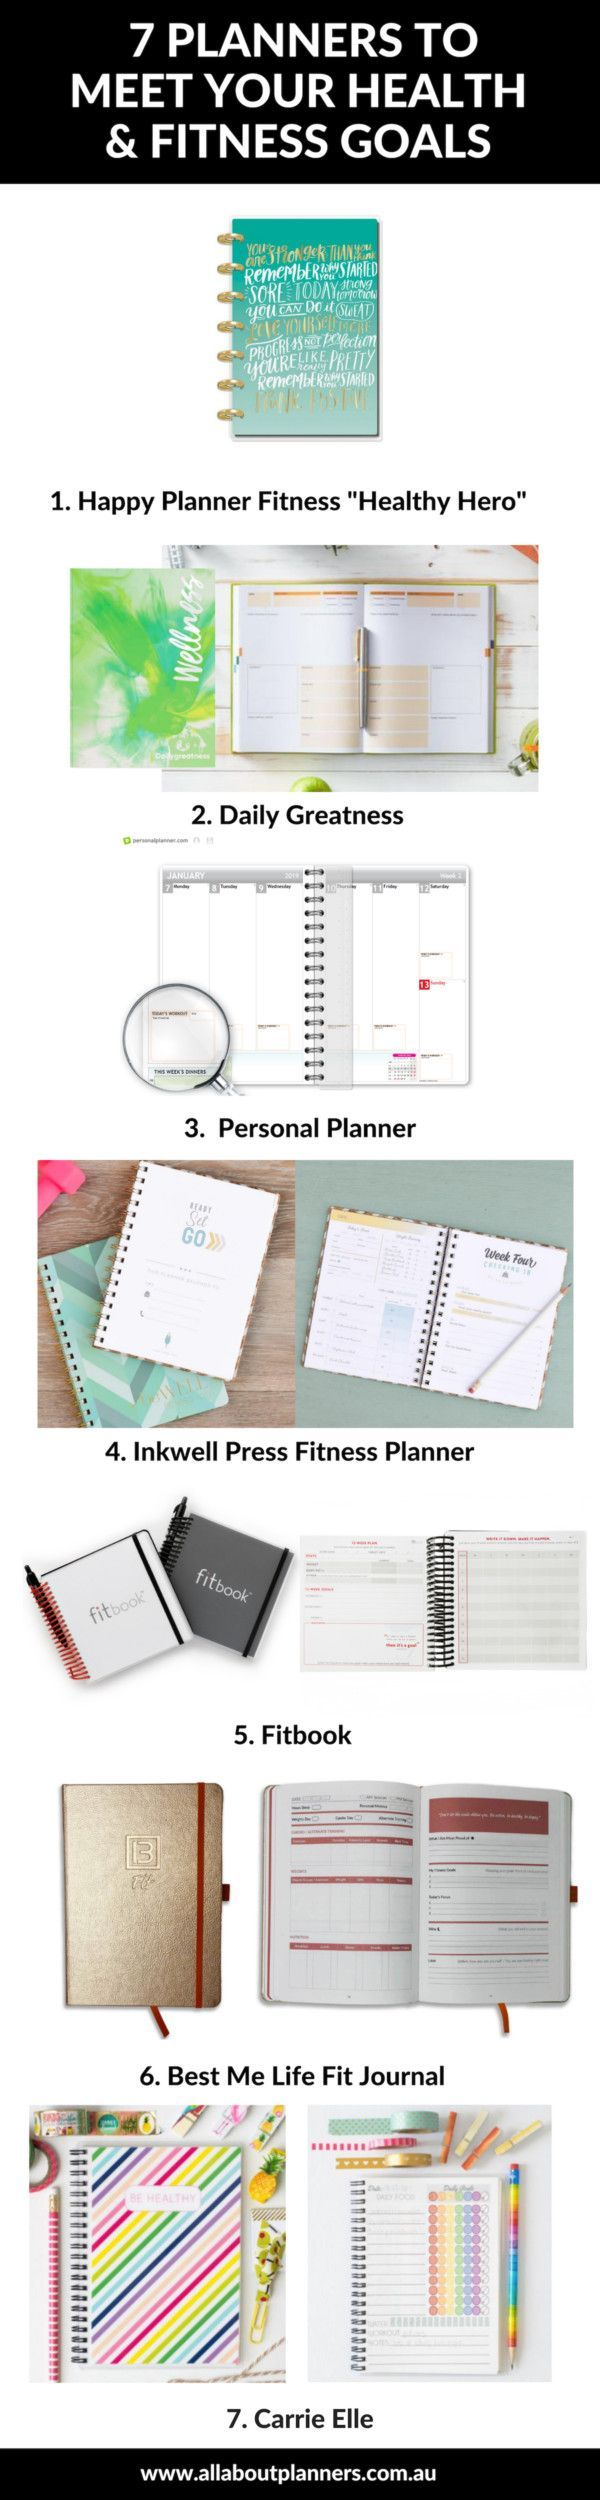 #wellbeing #trackers #exercise #planners #wellness #roundup #planner #fitness #calorie #journal #rev...